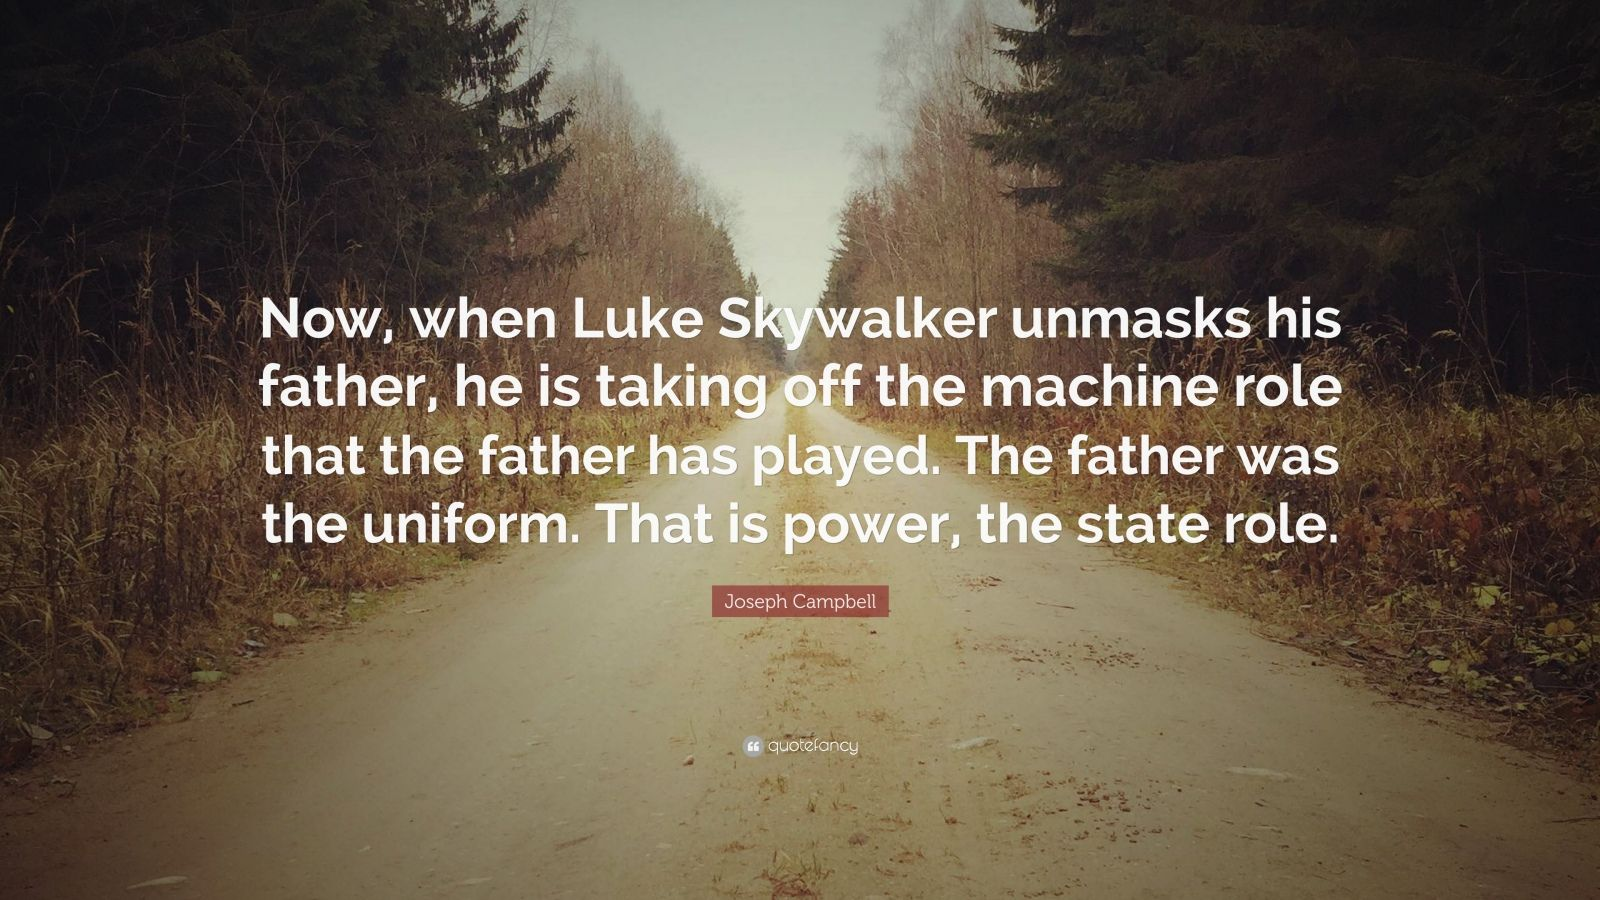 """Joseph Campbell Quote: """"Now, when Luke Skywalker unmasks his father, he is taking off the machine role that the father has played. The father was the uniform. That is power, the state role."""""""